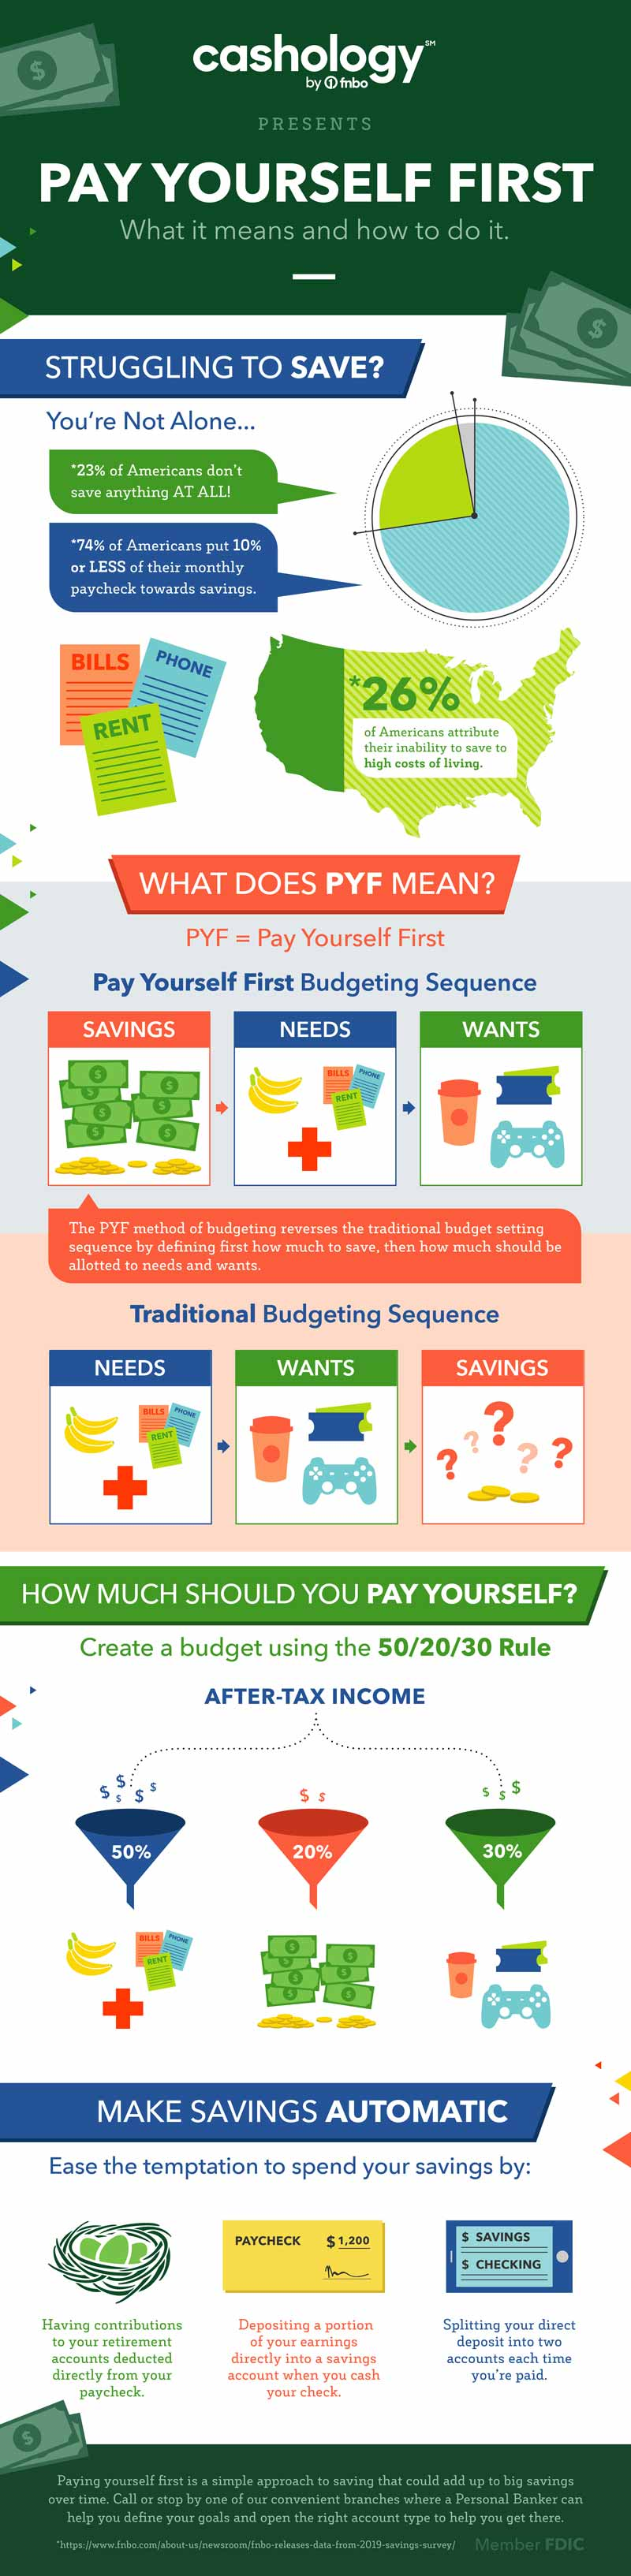 Cashology by fnbo presents pay yourself first.  What it means and how to do it. Struggling to save? You're not alone...23% of Americans don't save anything at all! 74% of Americans put 10% or less of their monthly paycheck towards savings. Bills, phone, rent. 26% of Americans attribute their inability to save to high costs of living. What does PYF mean? PYF = Pay yourself first. Pay yourself first budgeting sequence - savings - needs - wants. The PYF method of budgeting reverses the traditional budget setting sequence by defining first how much to save, then how much should be allotted to needs and wants.Traditional budgeting sequence - needs - wants - savings. How much should you pay yourself? Create a budget using the 50/20/30 rule. After tax income. 50% to needs, 20% savings and 30% to wants. Make savings automatic. Ease the temptation to spend your savings by: having contributions to your retirement accounts deducted directly from your paycheck, depositing a portion of your earnings directly into a savings account when you cash your check and splitting your direct deposit into two accounts each time you're paid. Paying yourself first is a simple approach to saving that could add up to big savings over time. Call of stop by one of our convenient branches where a personal banker can help you define your goals and open the right account type to help you get there.